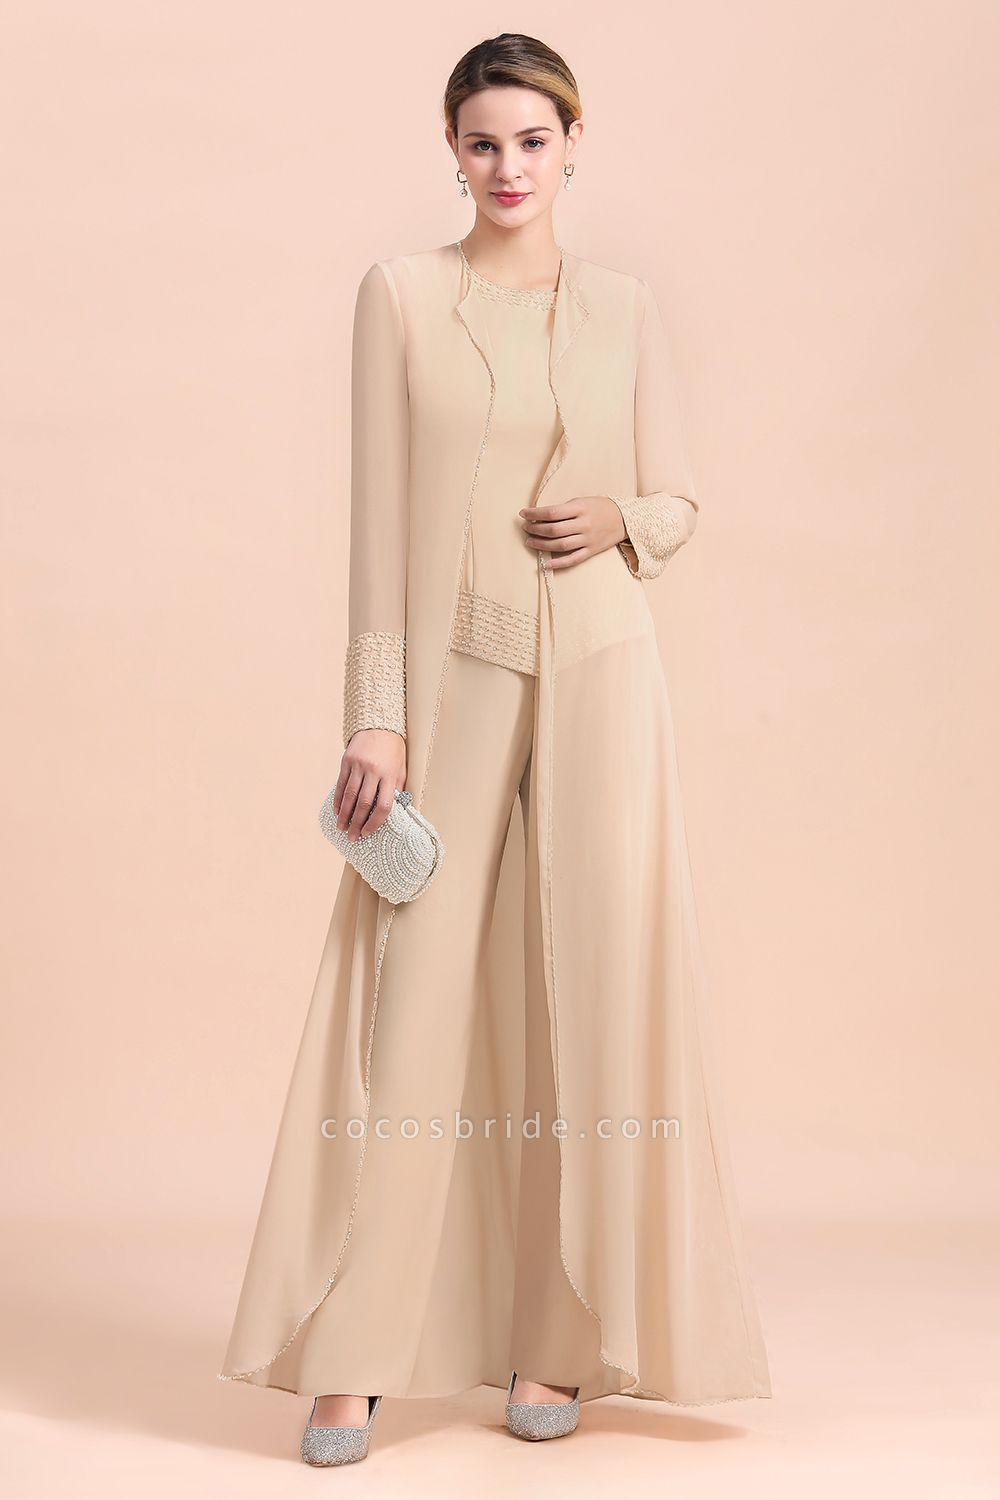 Two Pieces Champagne Long Sleeve Chiffon Mother of the Bride Dress With Jacket